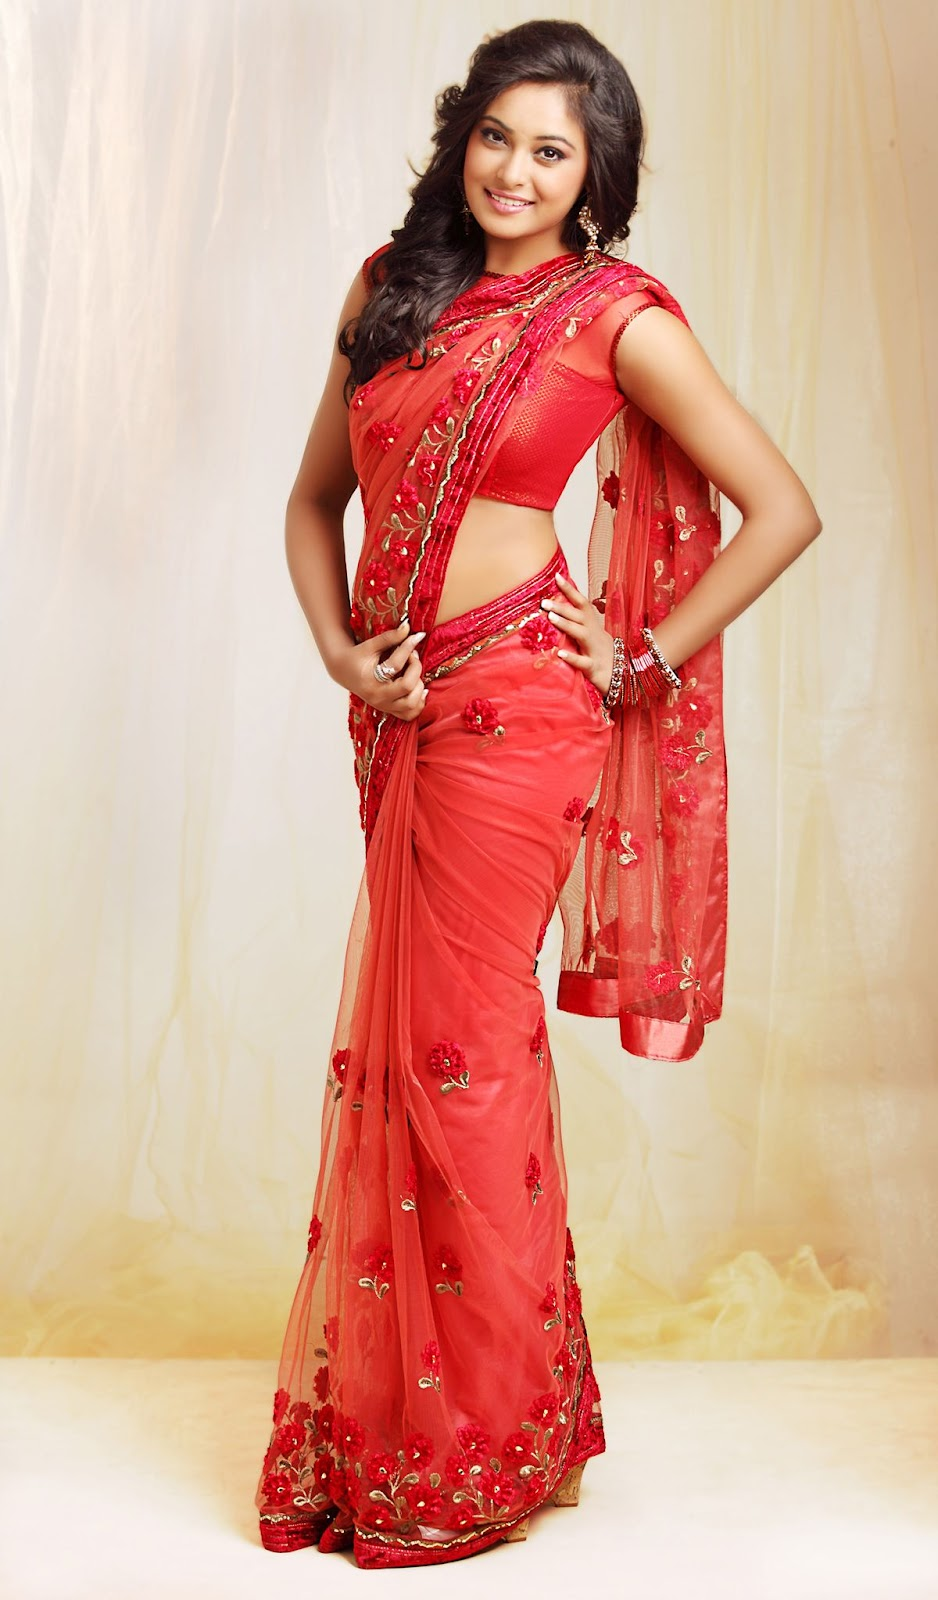 Indian Porn Red Saree